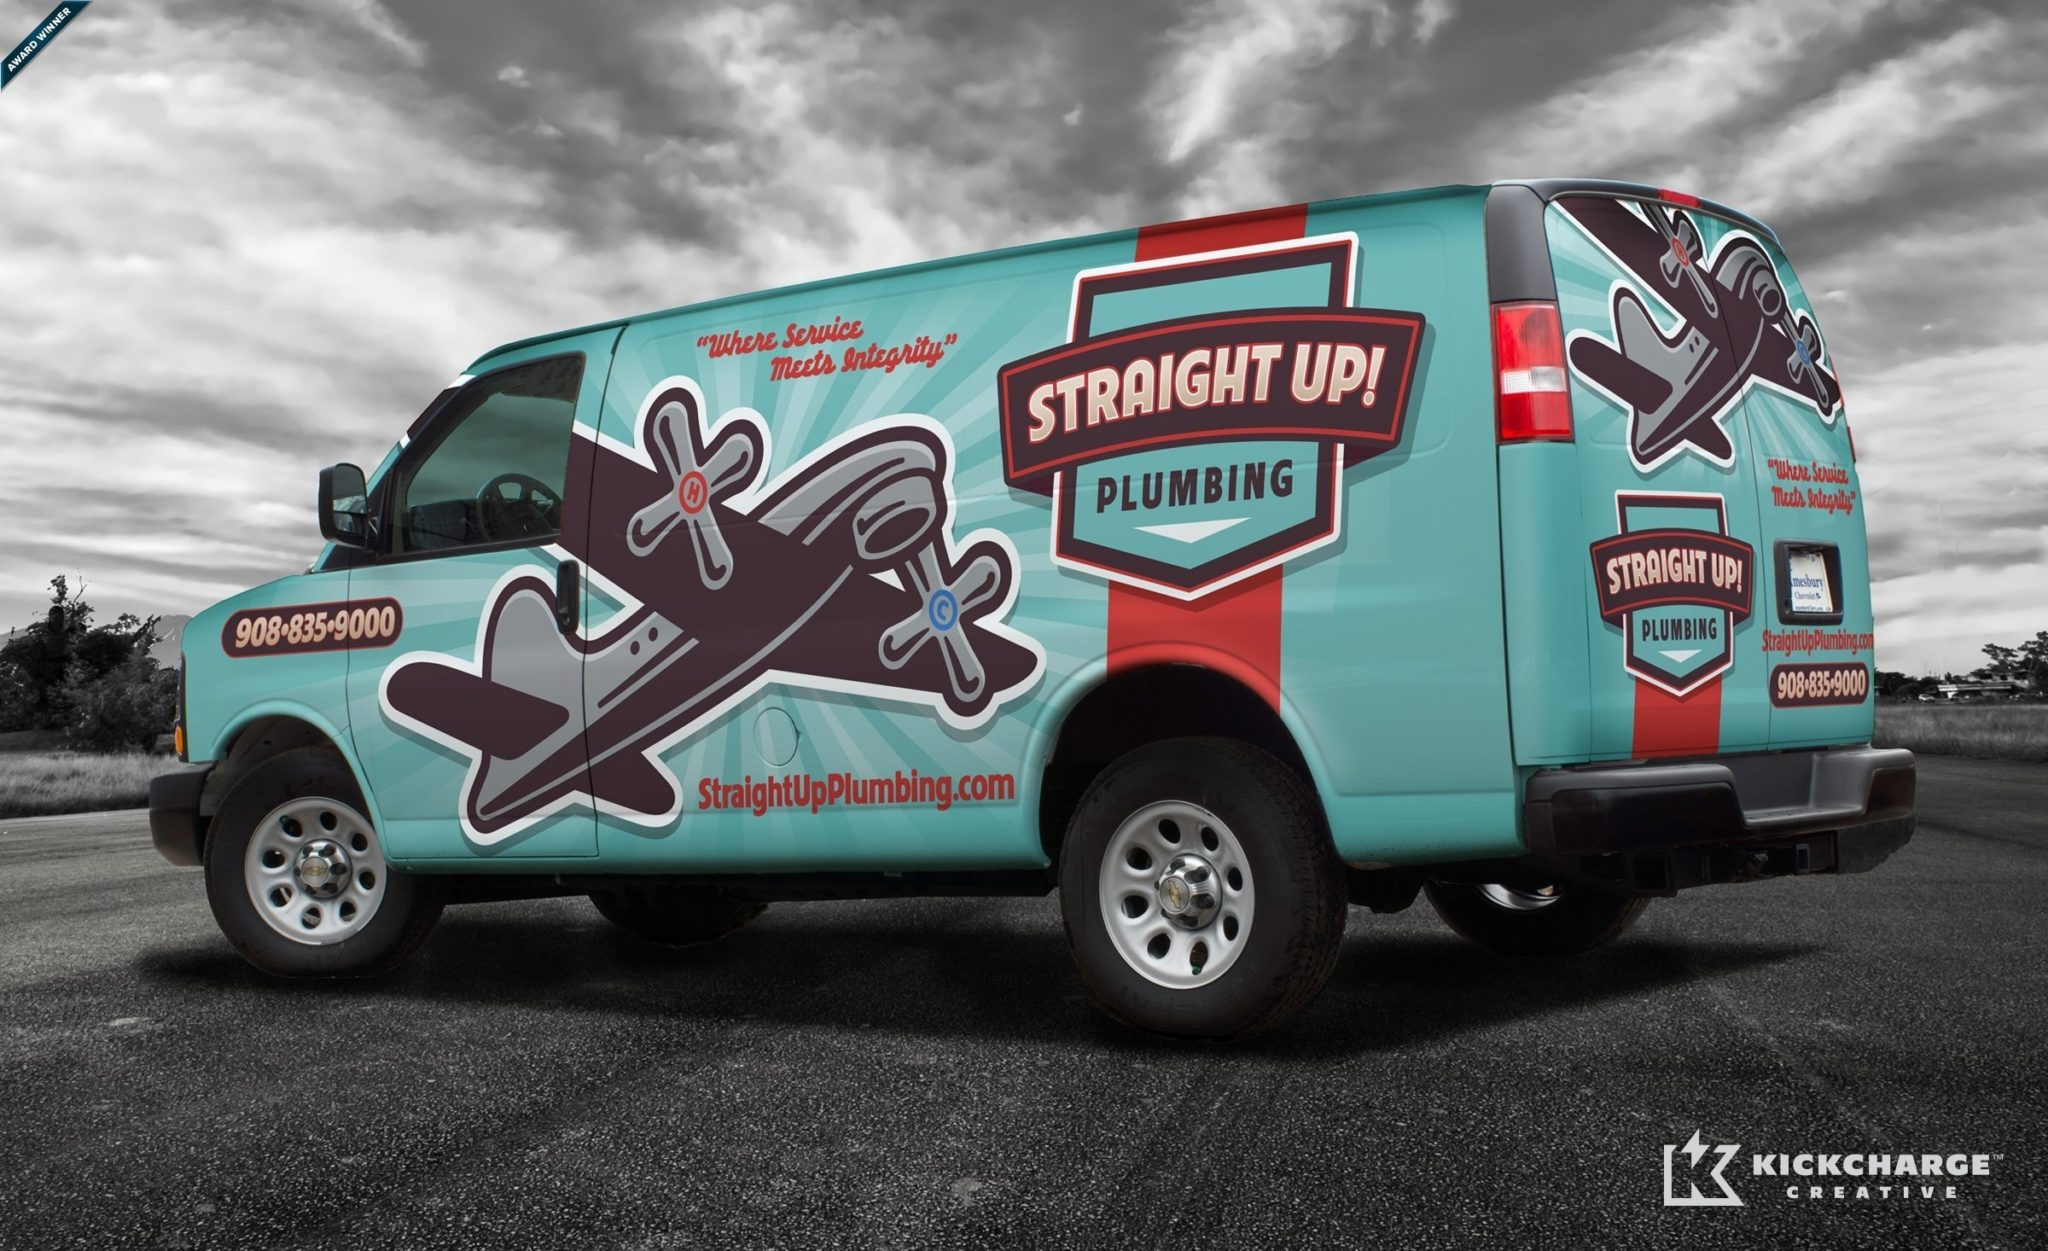 Truck wrap design for a plumbing company in Nevada. The best truck wraps use easy to view graphics, and a great logo to communicate a memorable brand.